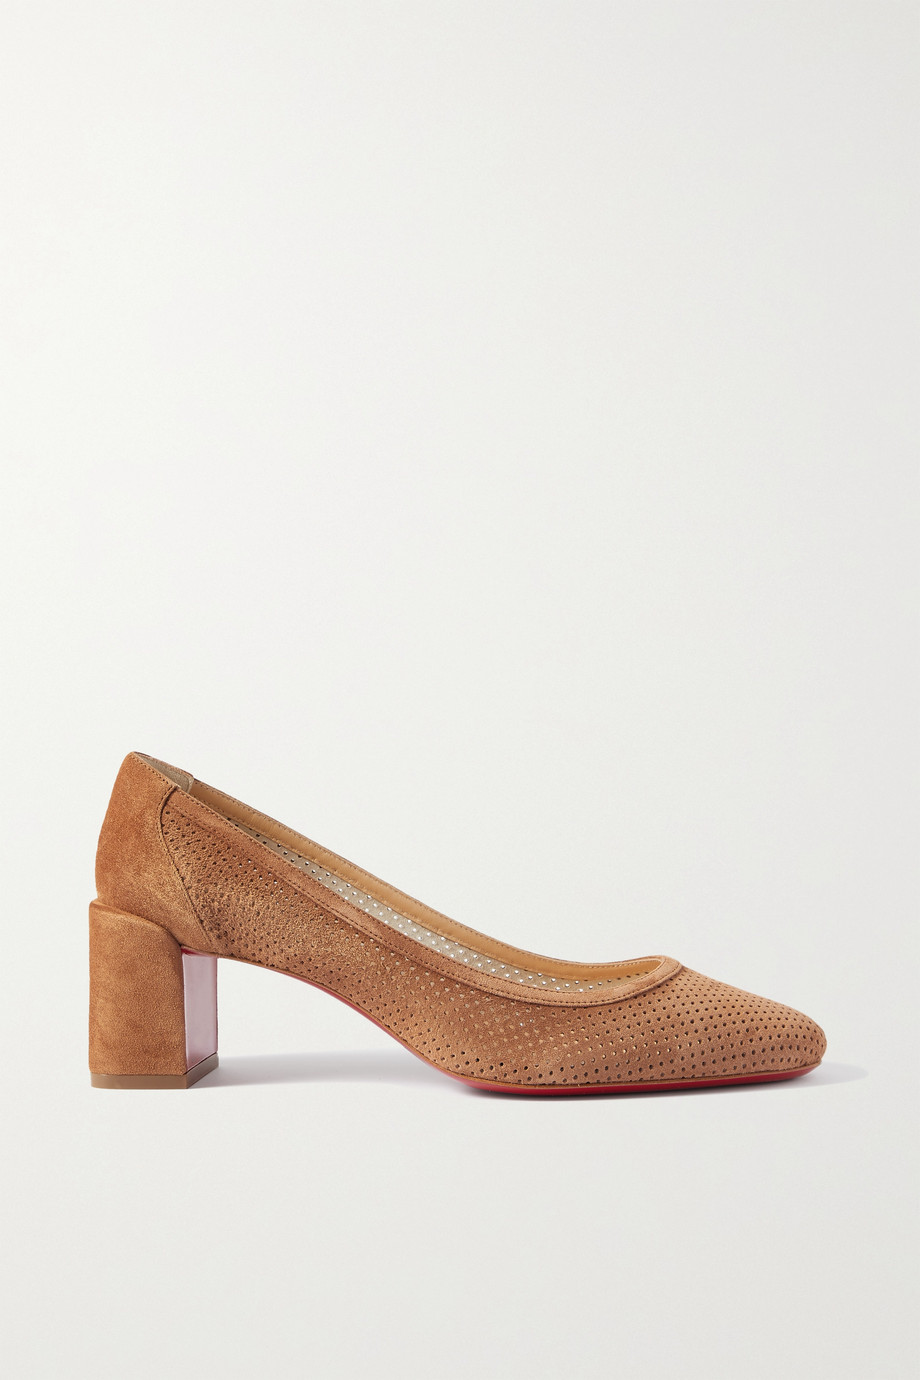 CHRISTIAN LOUBOUTIN Incastrana 55 perforated suede pumps